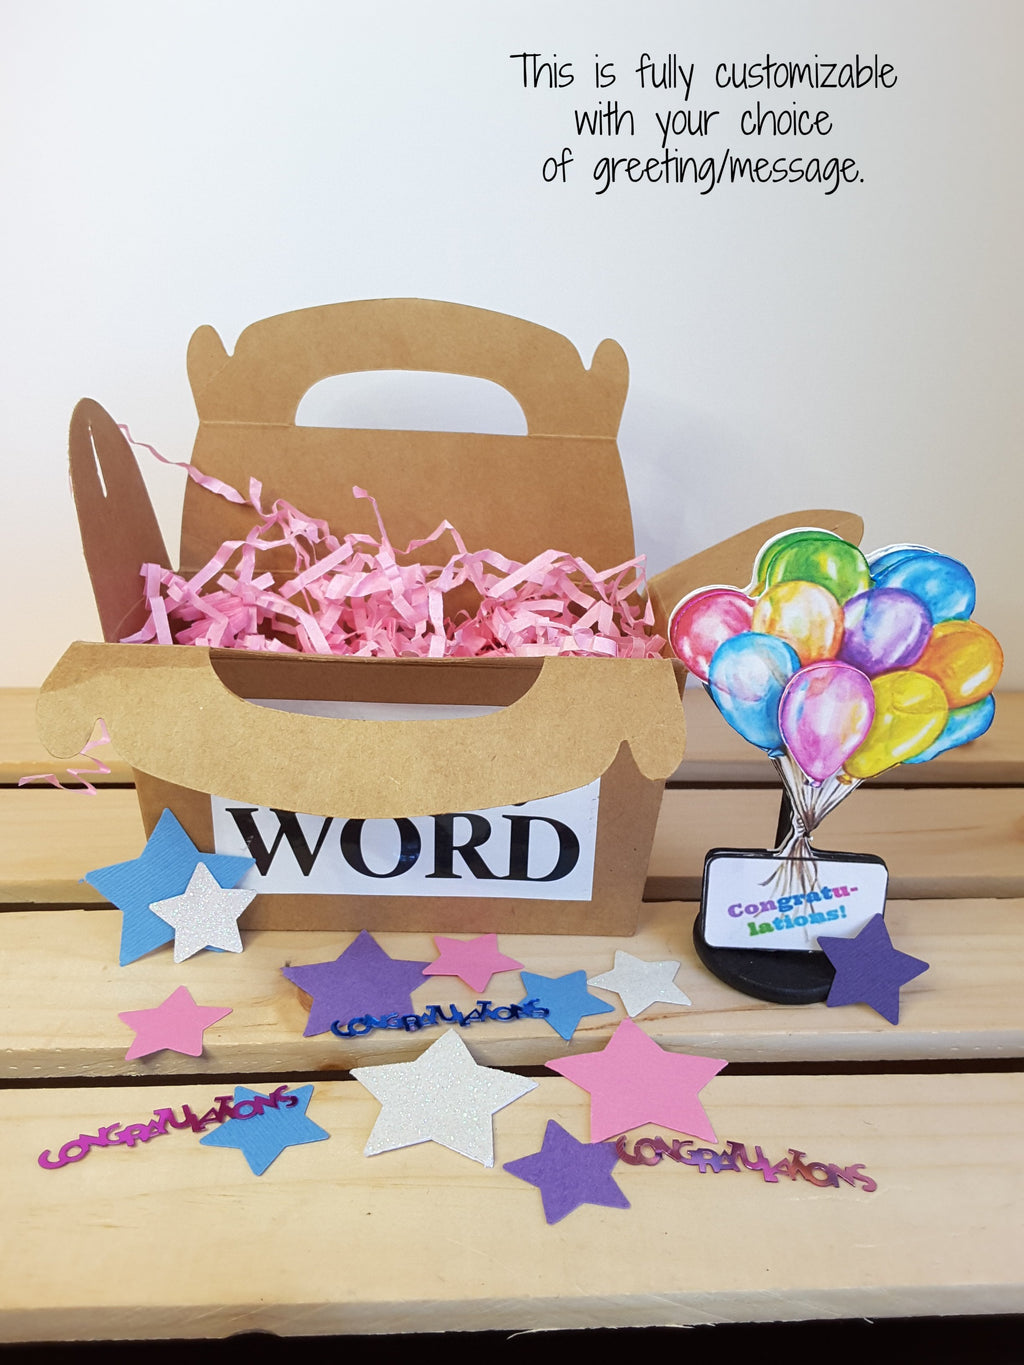 3-D bouquet of watercolor balloons greeting card, gift gable box, and confetti